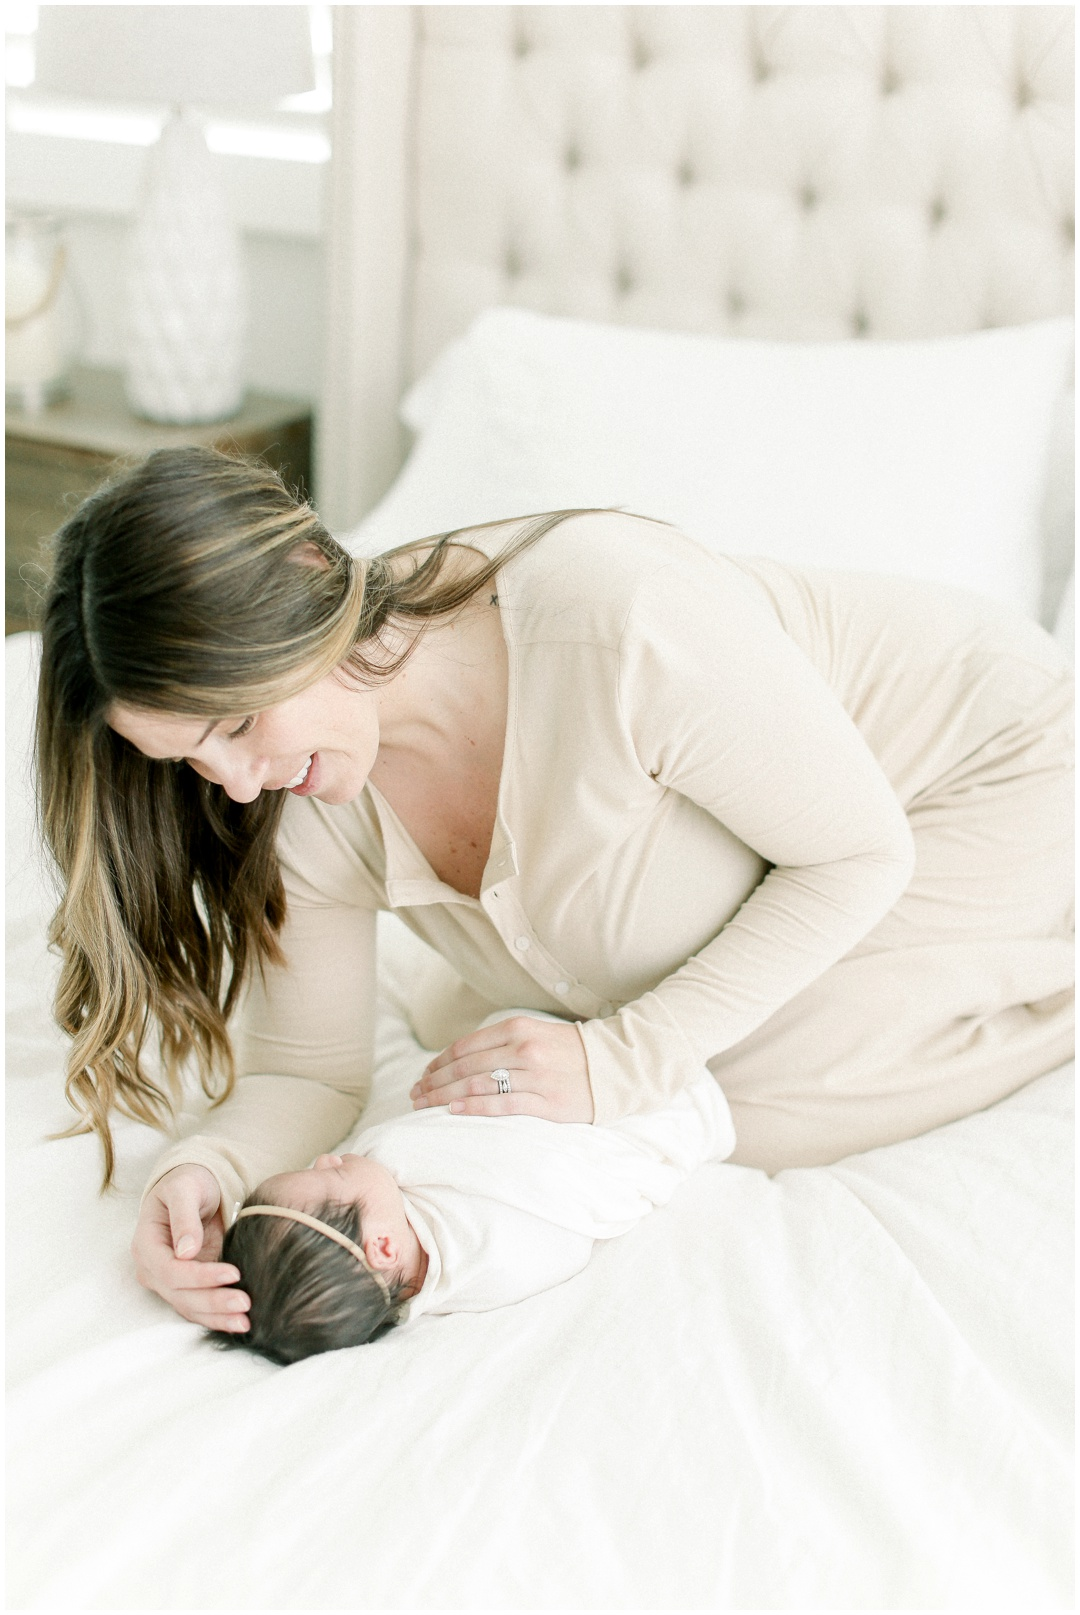 Newport_Beach_Newborn_Light_Airy_Natural_Photographer_Newport_Beach_In-Home_Photographer_Orange_County_Family_Photographer_Cori_Kleckner_Photography_Huntington_Beach_Photographer_Family_OC_Newborn_Blair_Sharpe_Ricky_Sharpe_Newborn_Family__3172.jpg